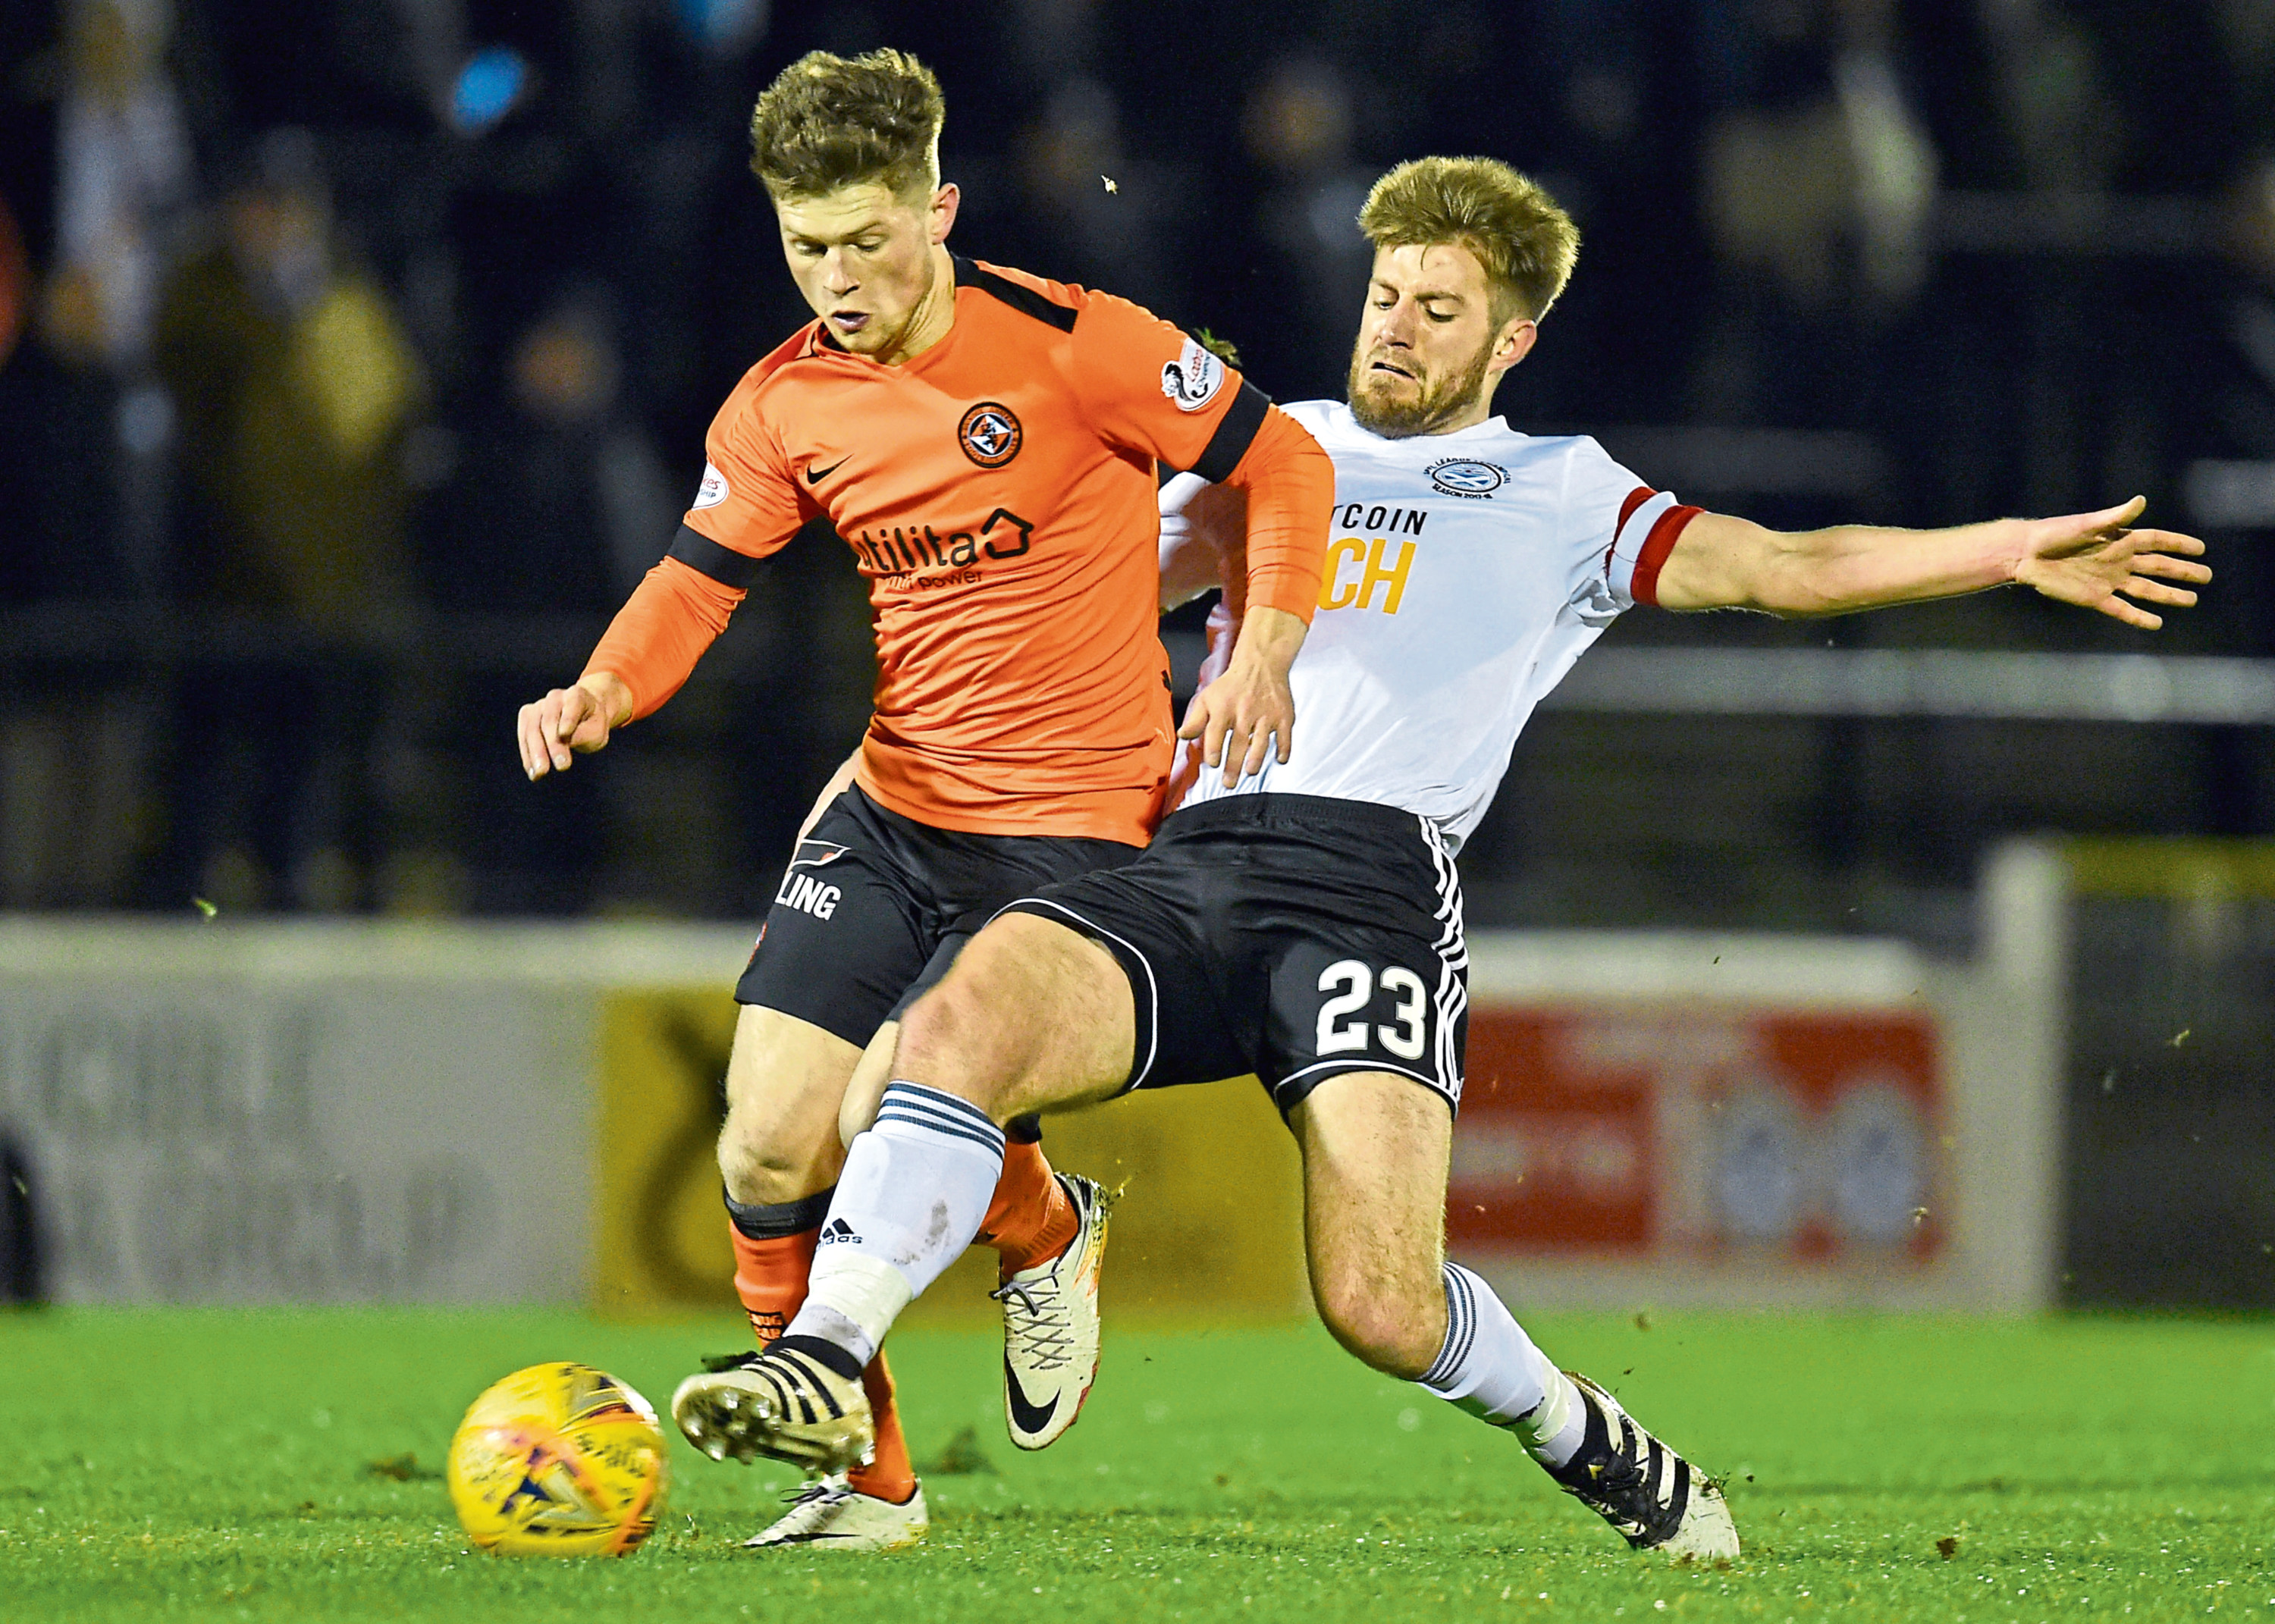 Ayr captain Ross Docherty in action against Dundee United's Cammy Smith (left).